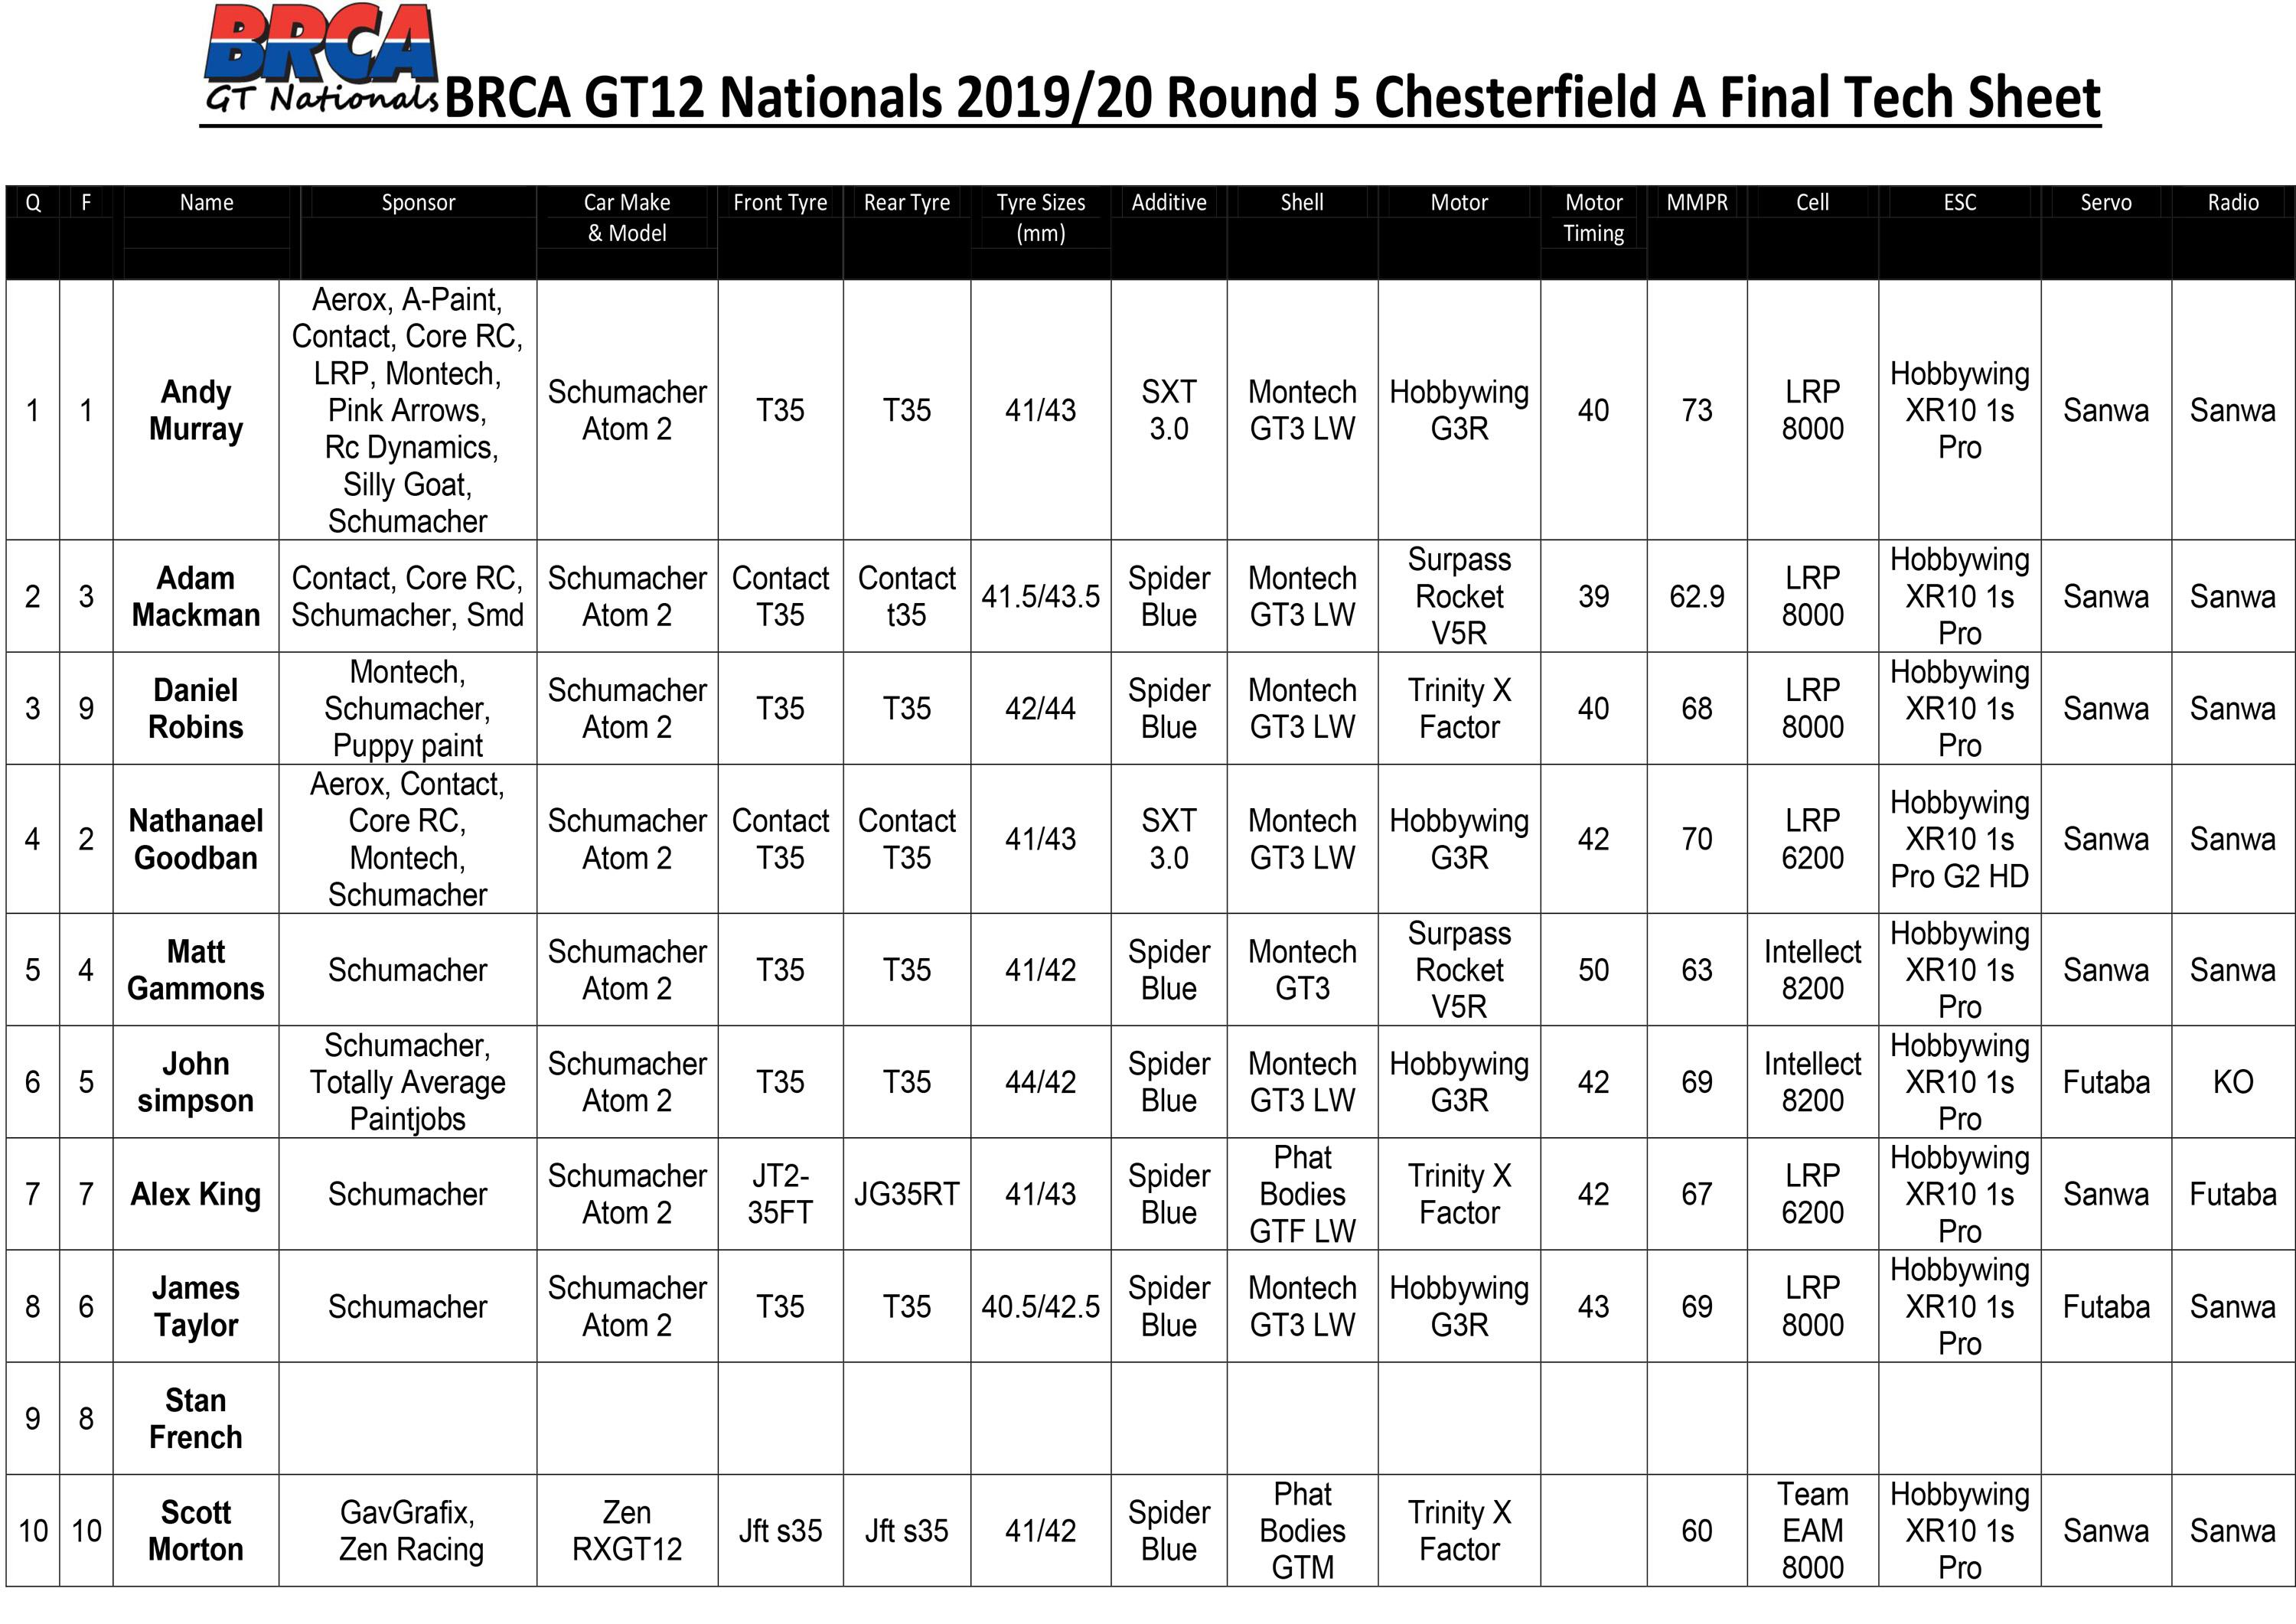 BRCA GT Tech Sheet RD5 Chesterfield